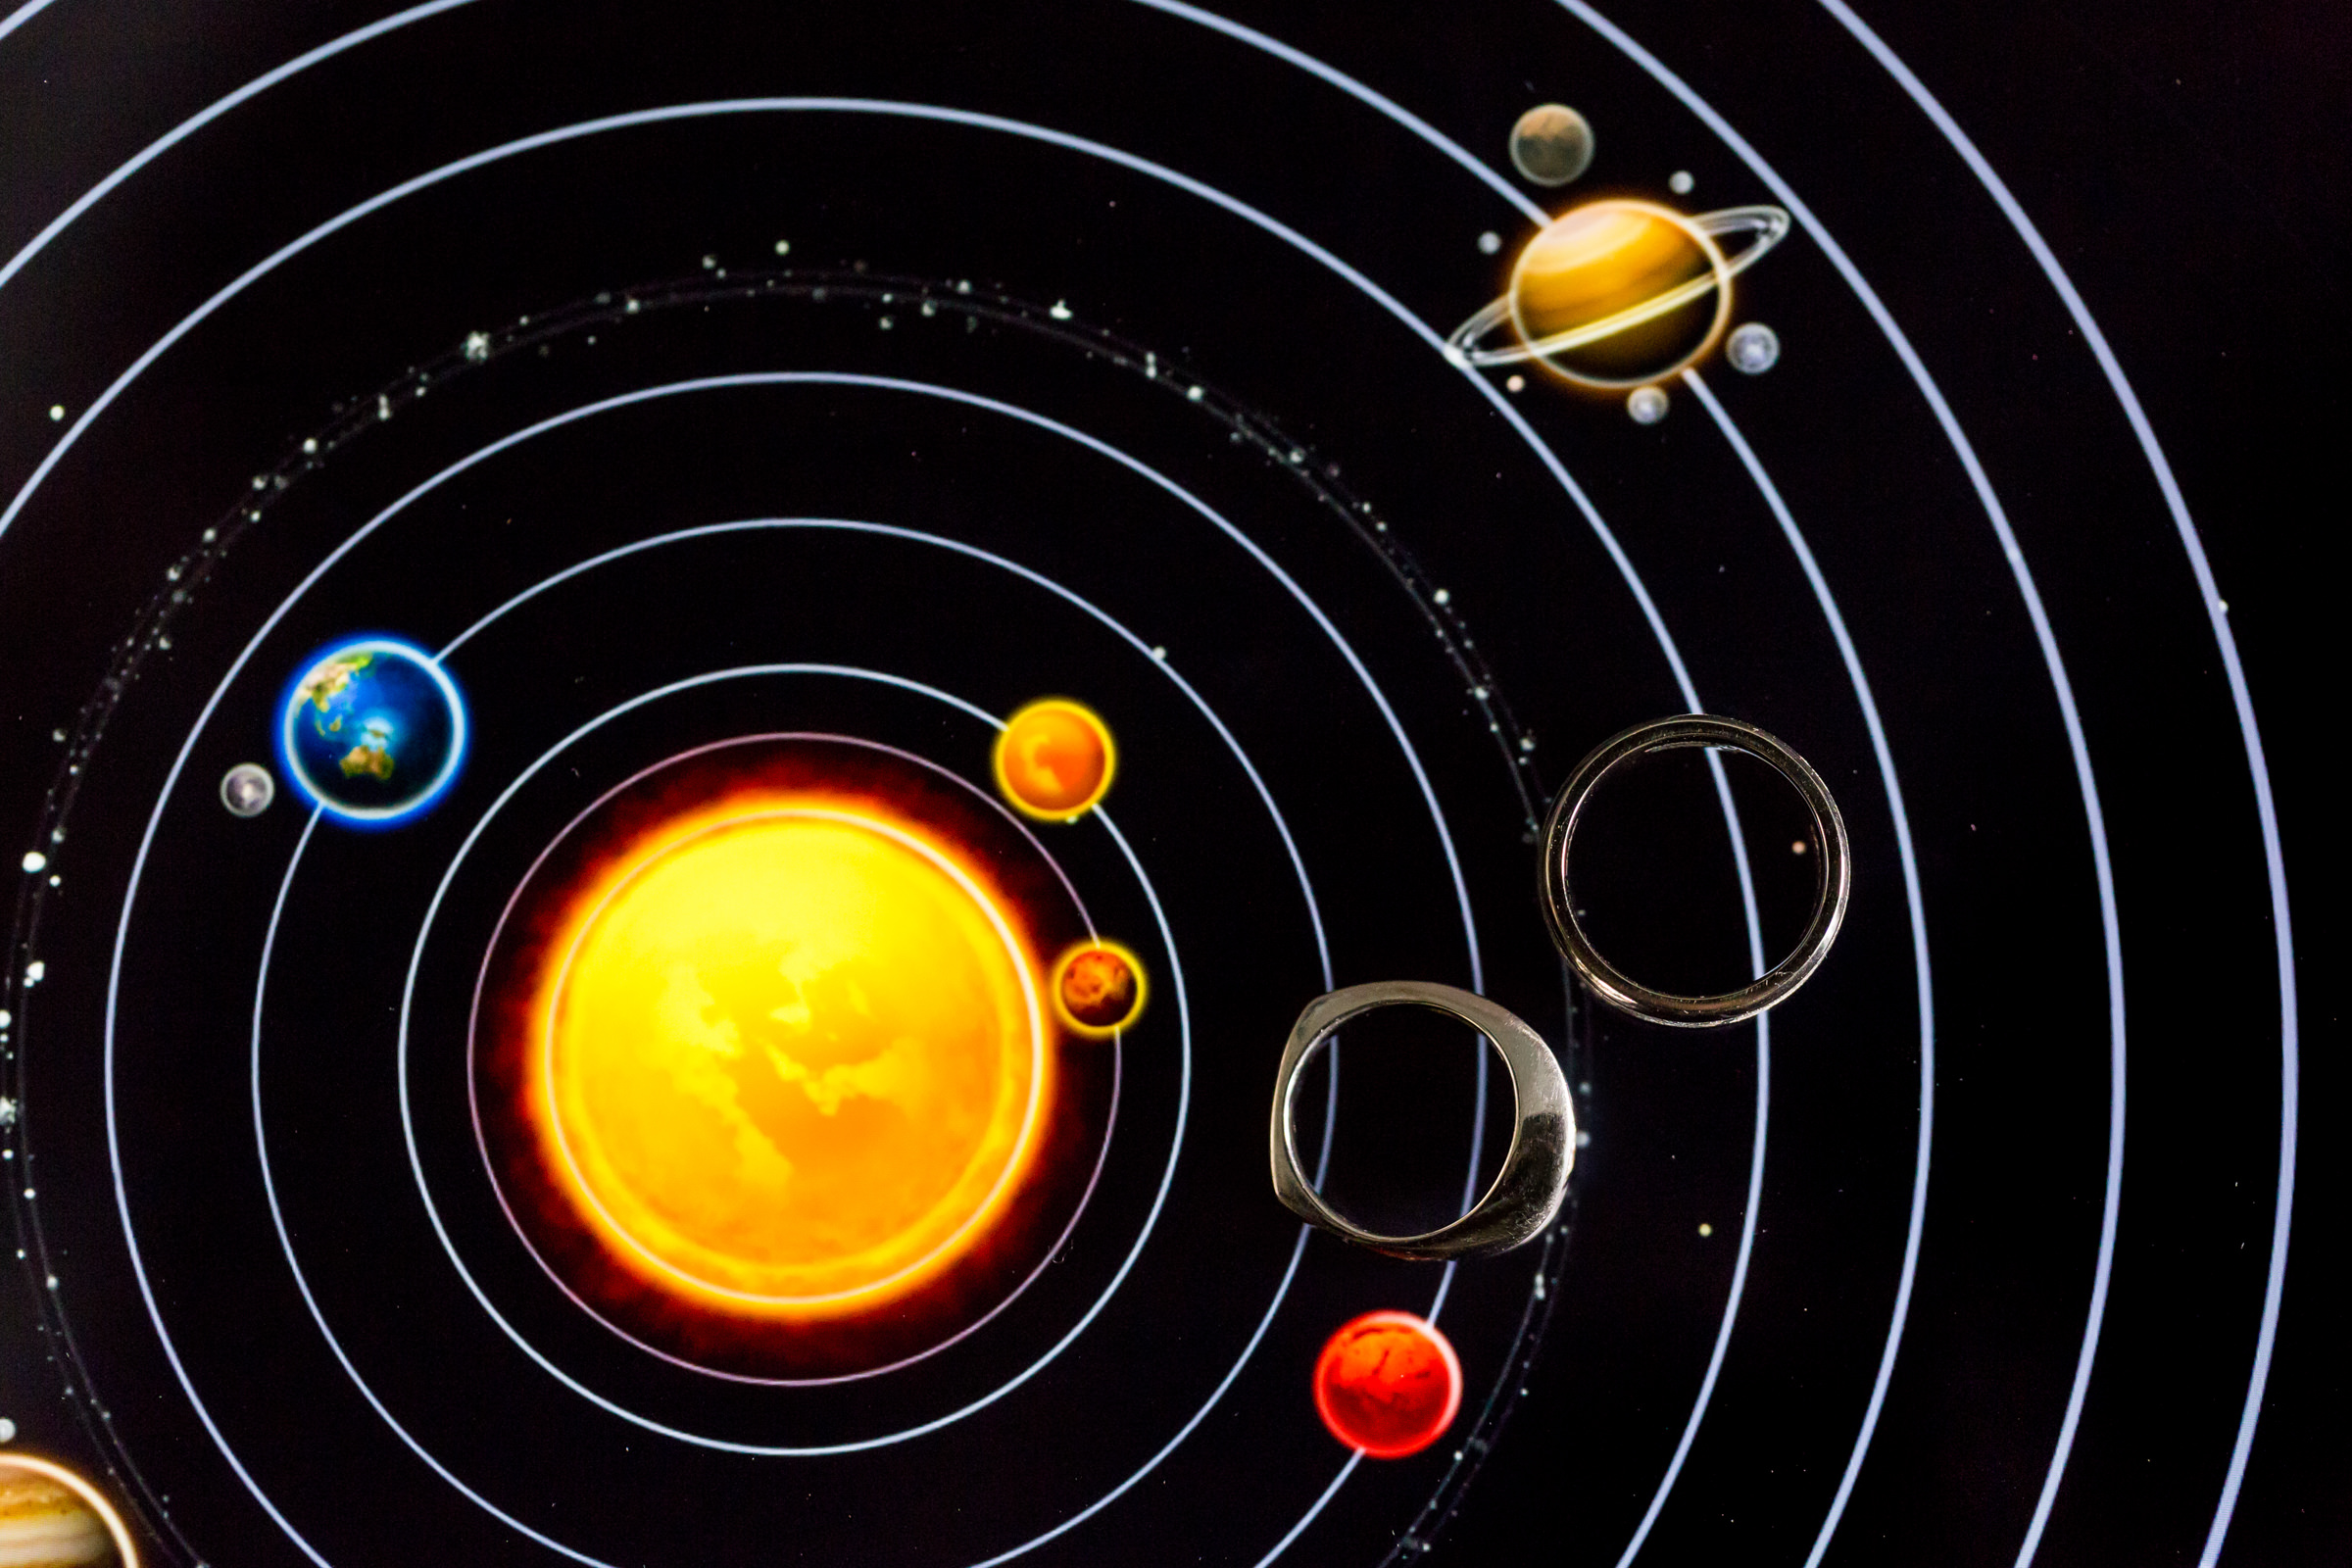 Rings against image of planetary orbits - photo by Procopio Photography